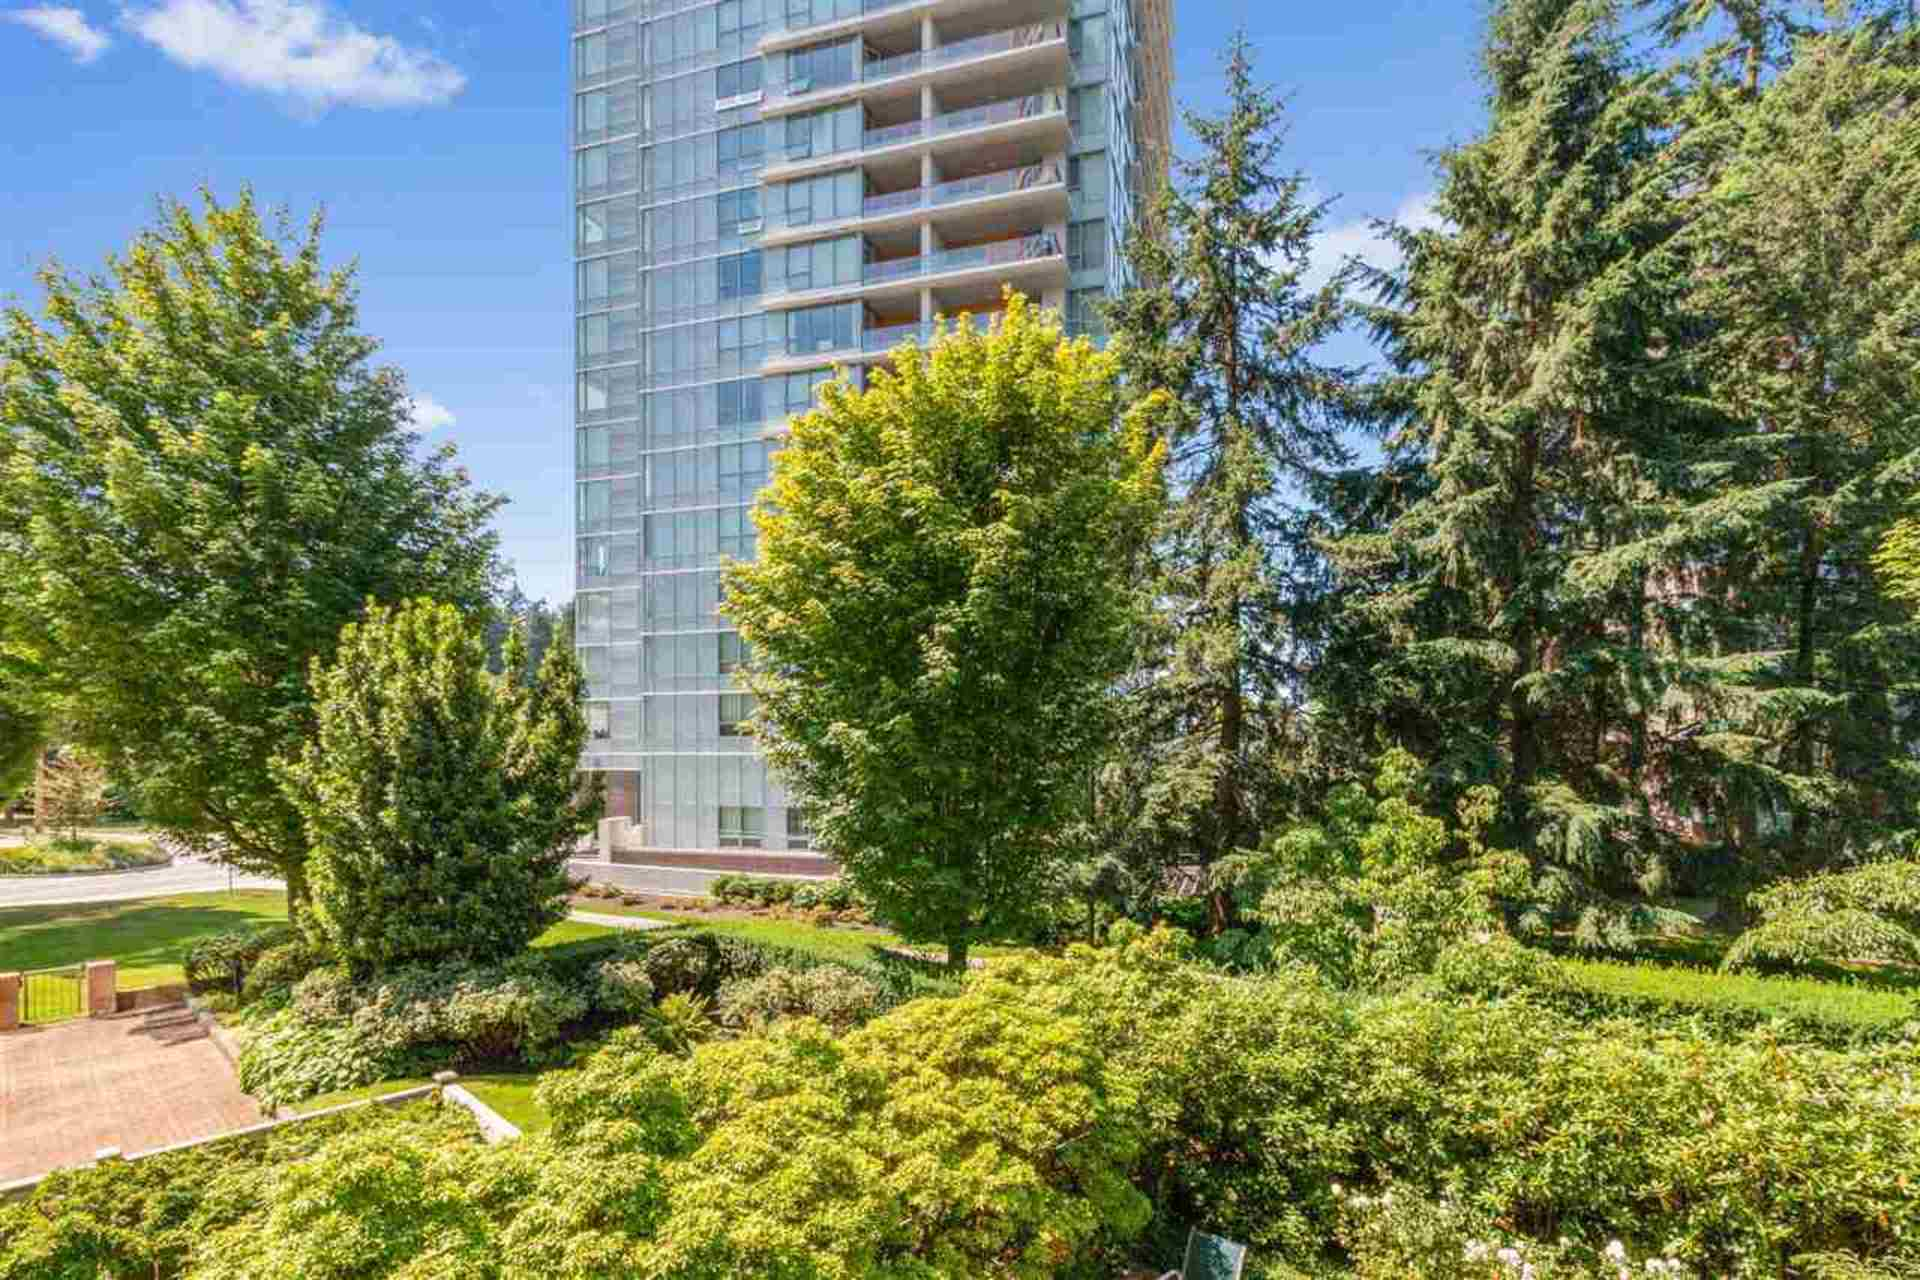 5885-olive-avenue-metrotown-burnaby-south-20 at 201 - 5885 Olive Avenue, Metrotown, Burnaby South